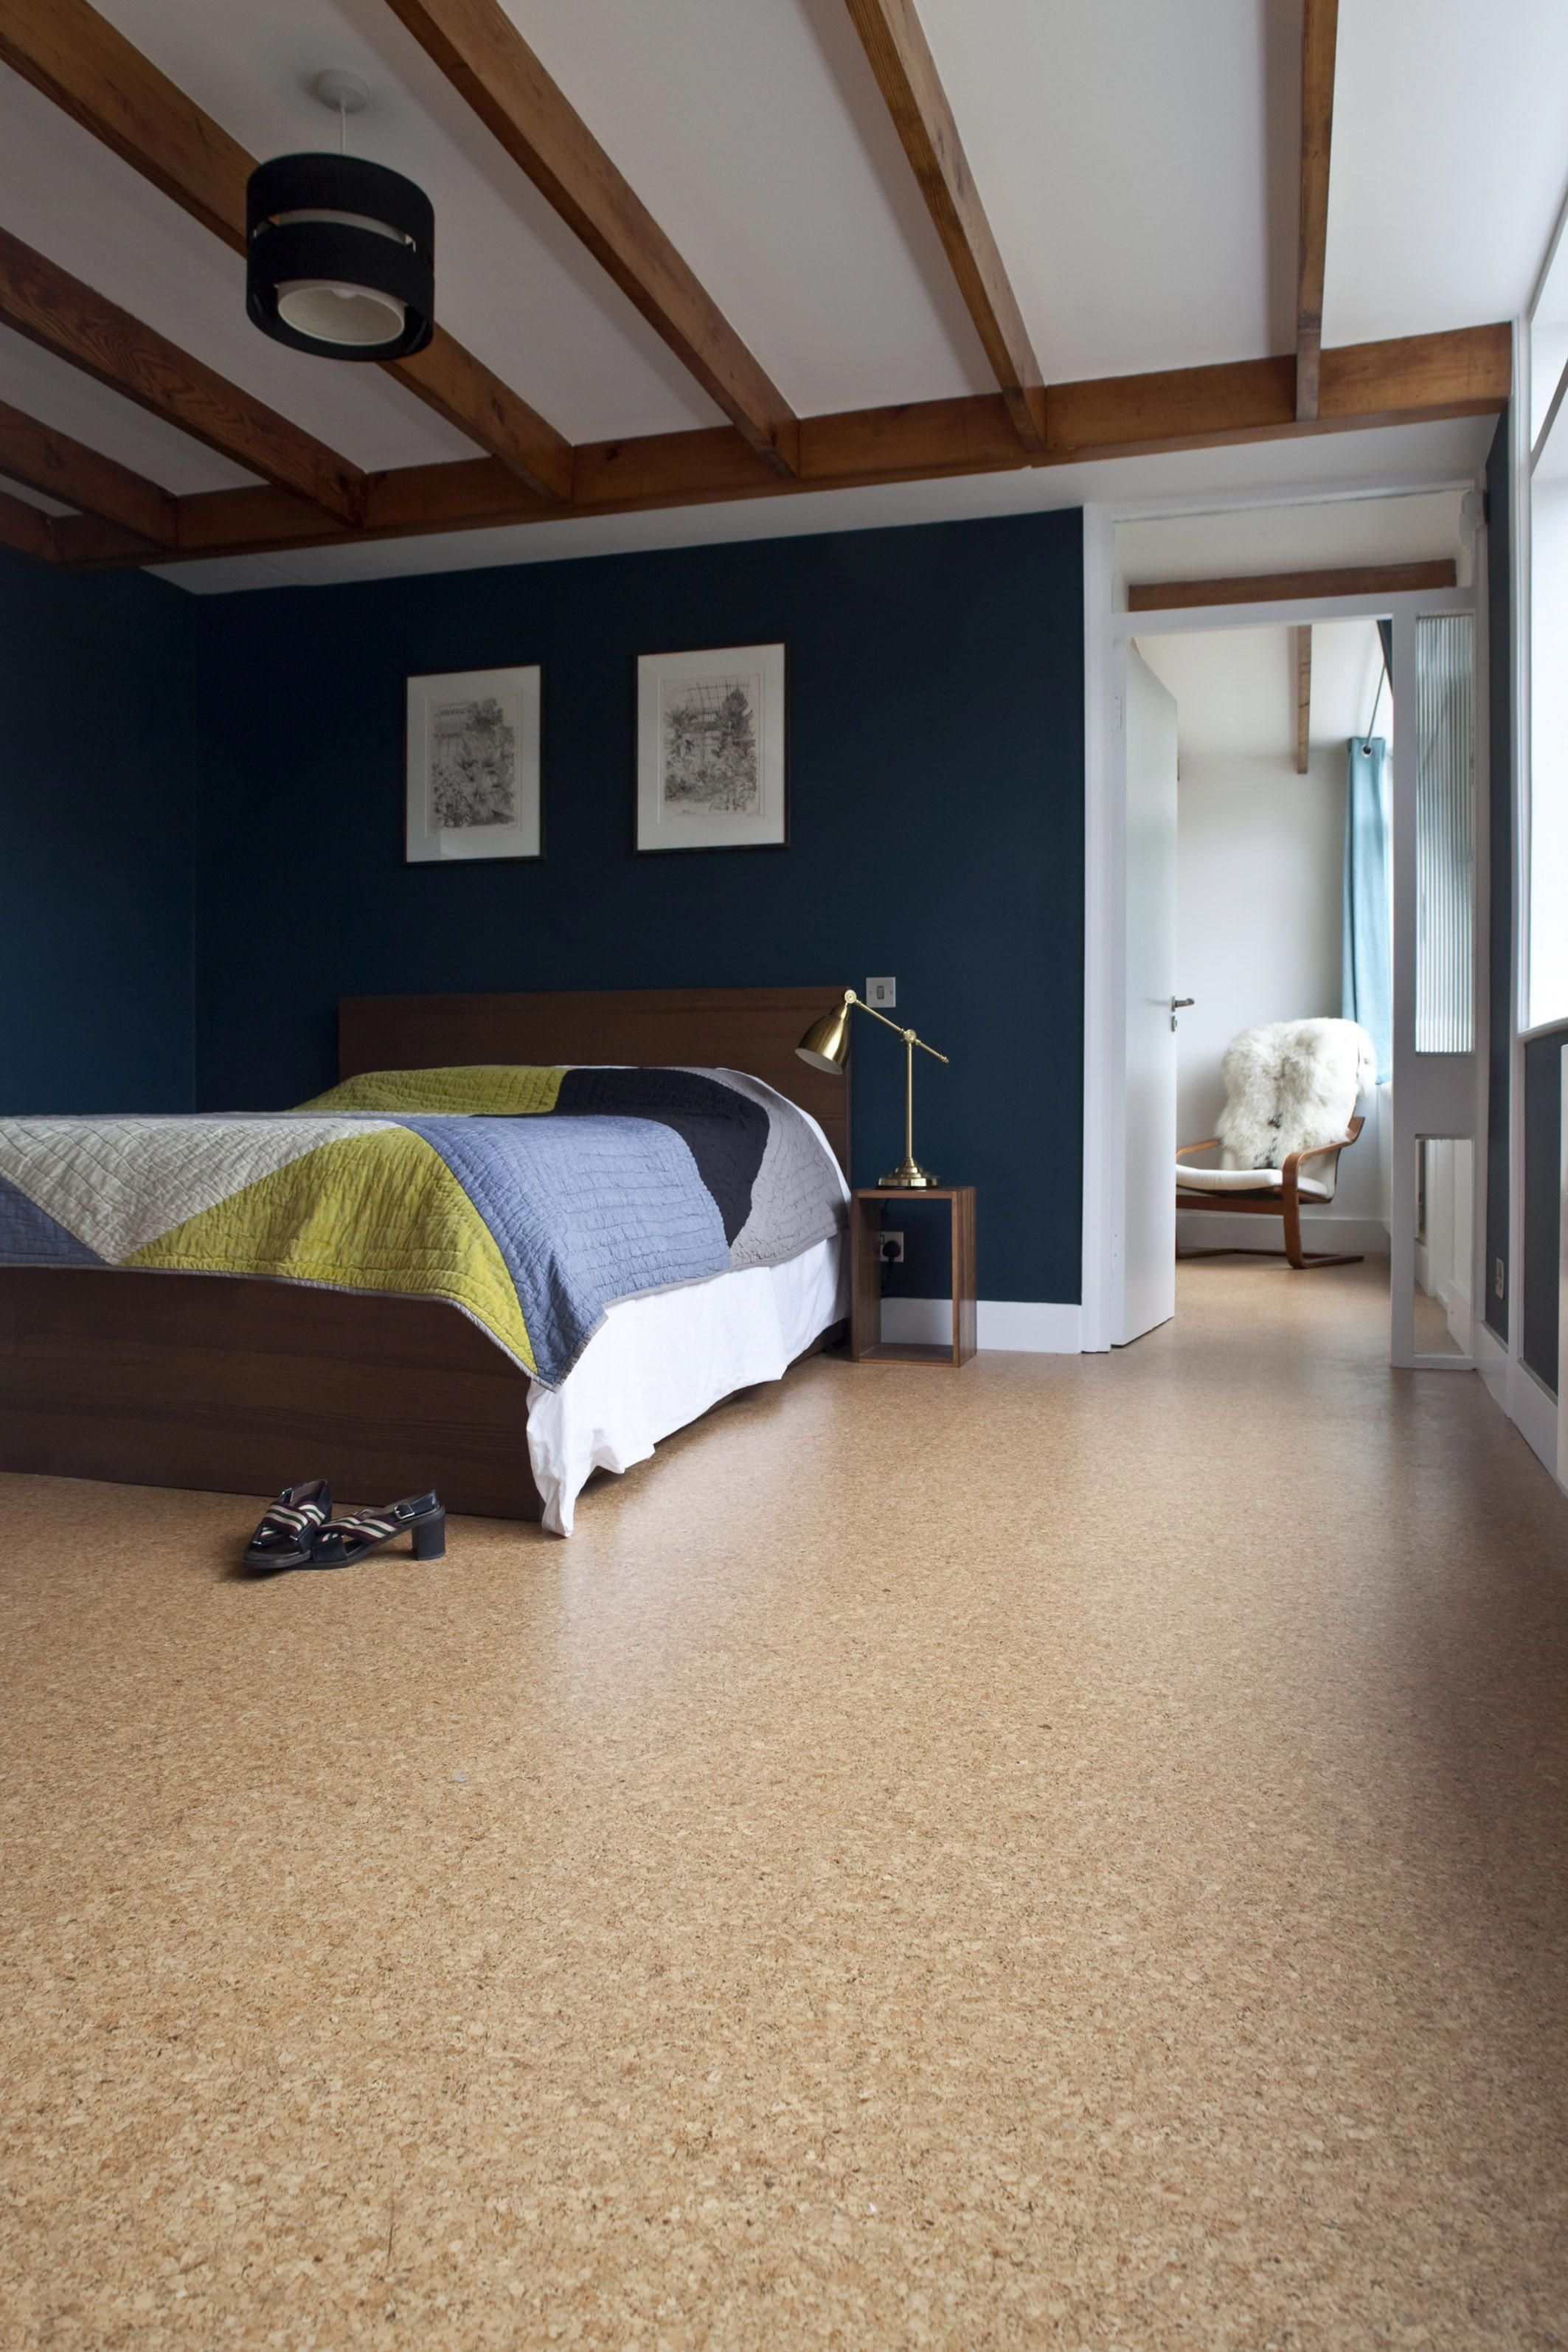 Schlafzimmer Bodenbelag Hardwoodflooringkitchen Flooring Wall And Tiles In 2019 Cork